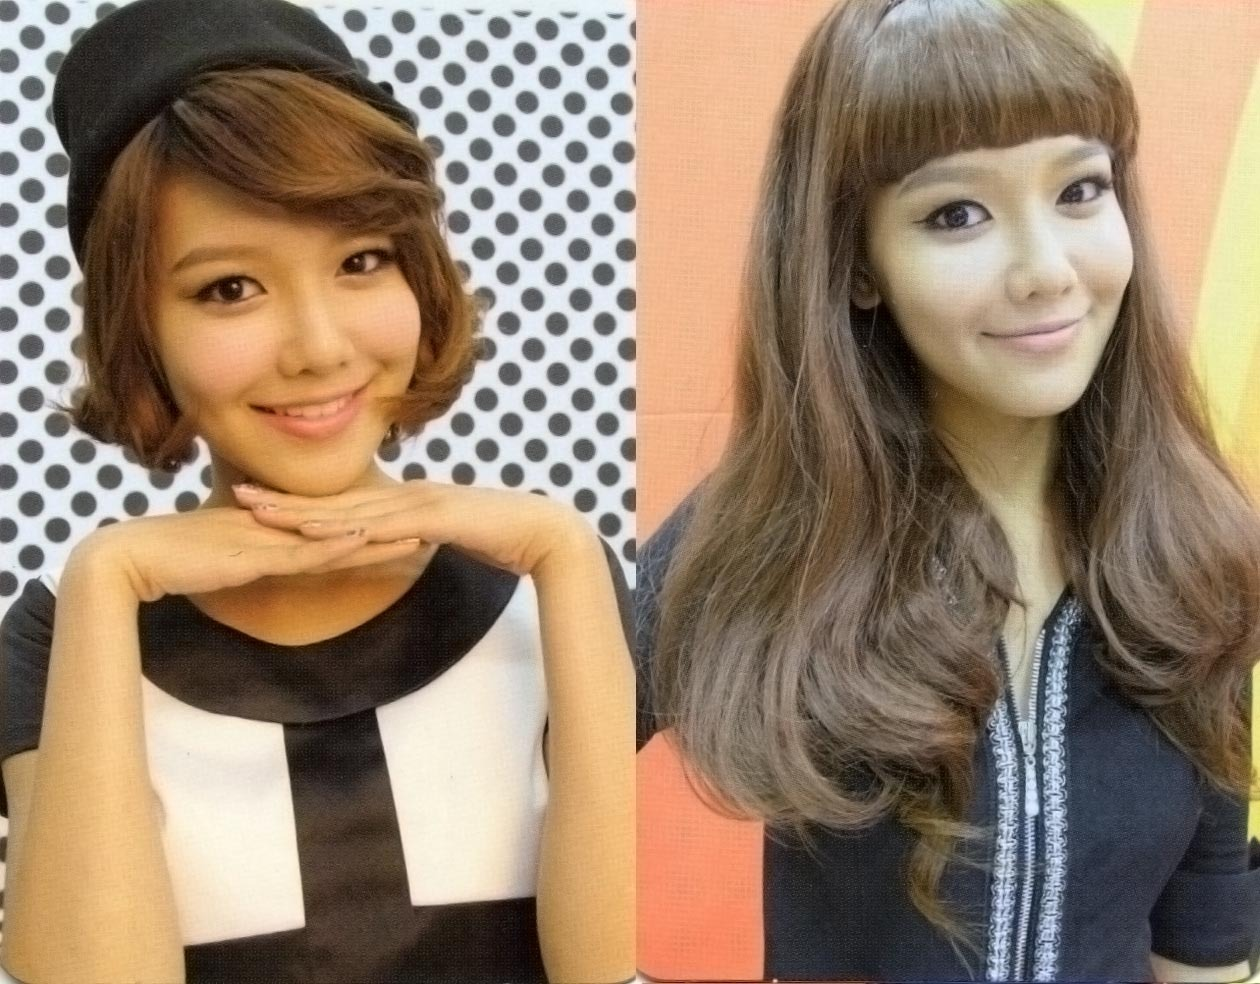 http://images4.fanpop.com/image/photos/17100000/sooyoung-Hoot-girls-generation-snsd-17165811-1260-984.jpg